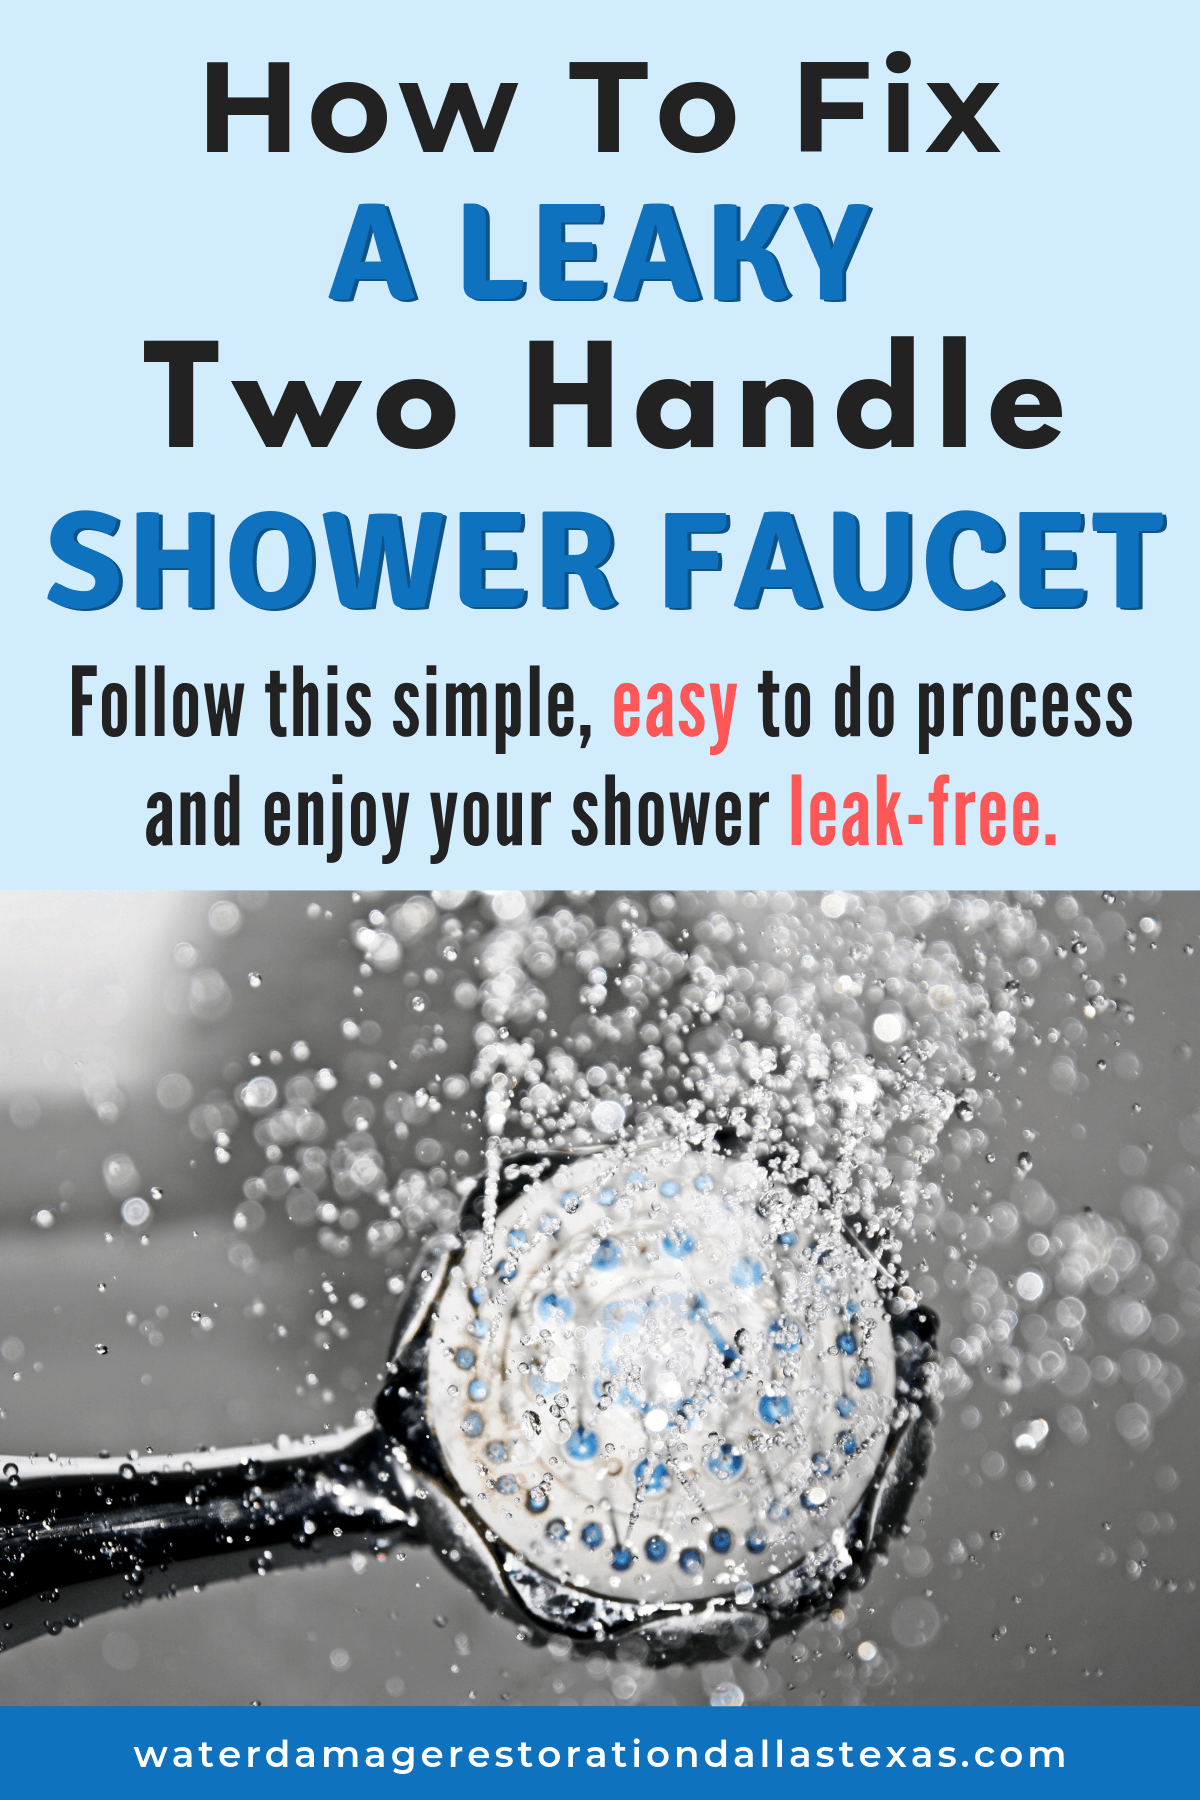 How to fix a leaky shower faucet